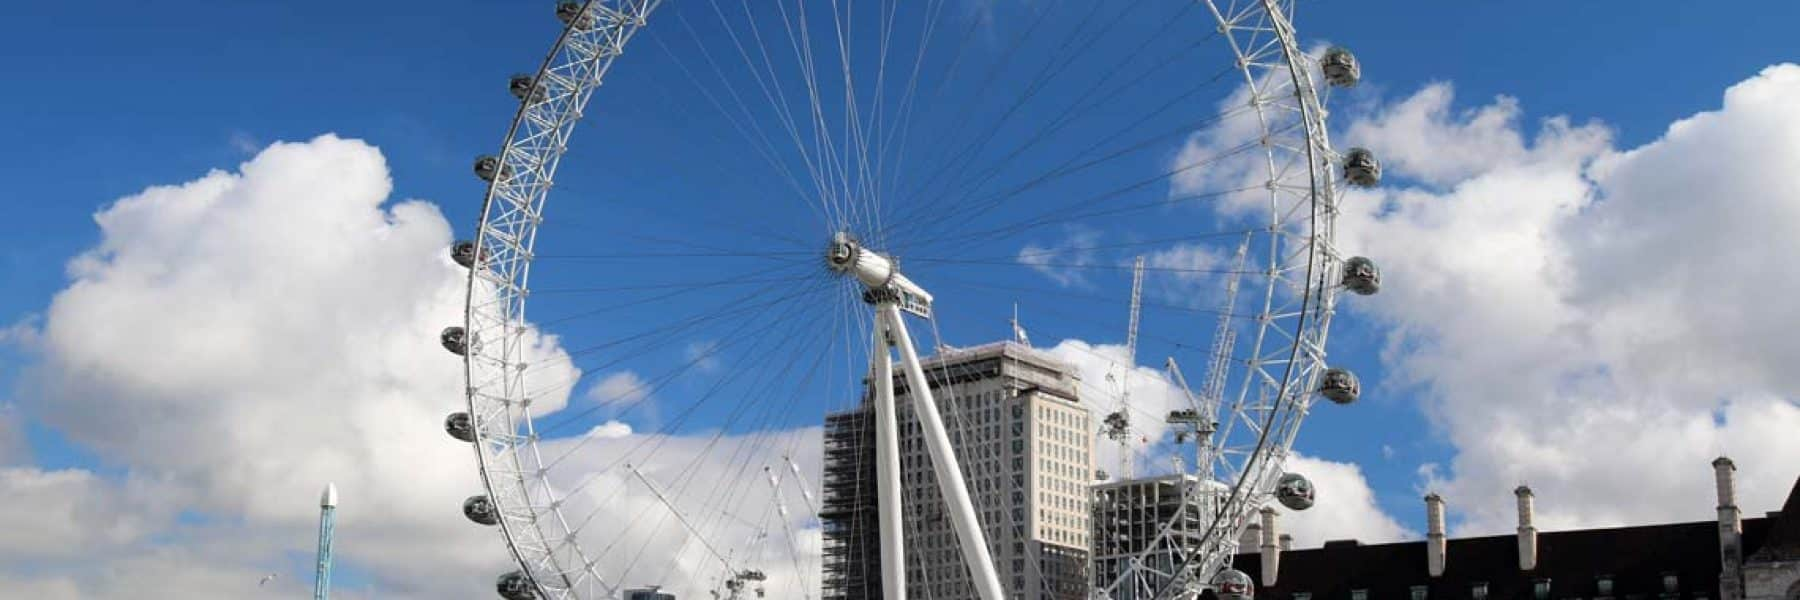 London Eye, Waterloo